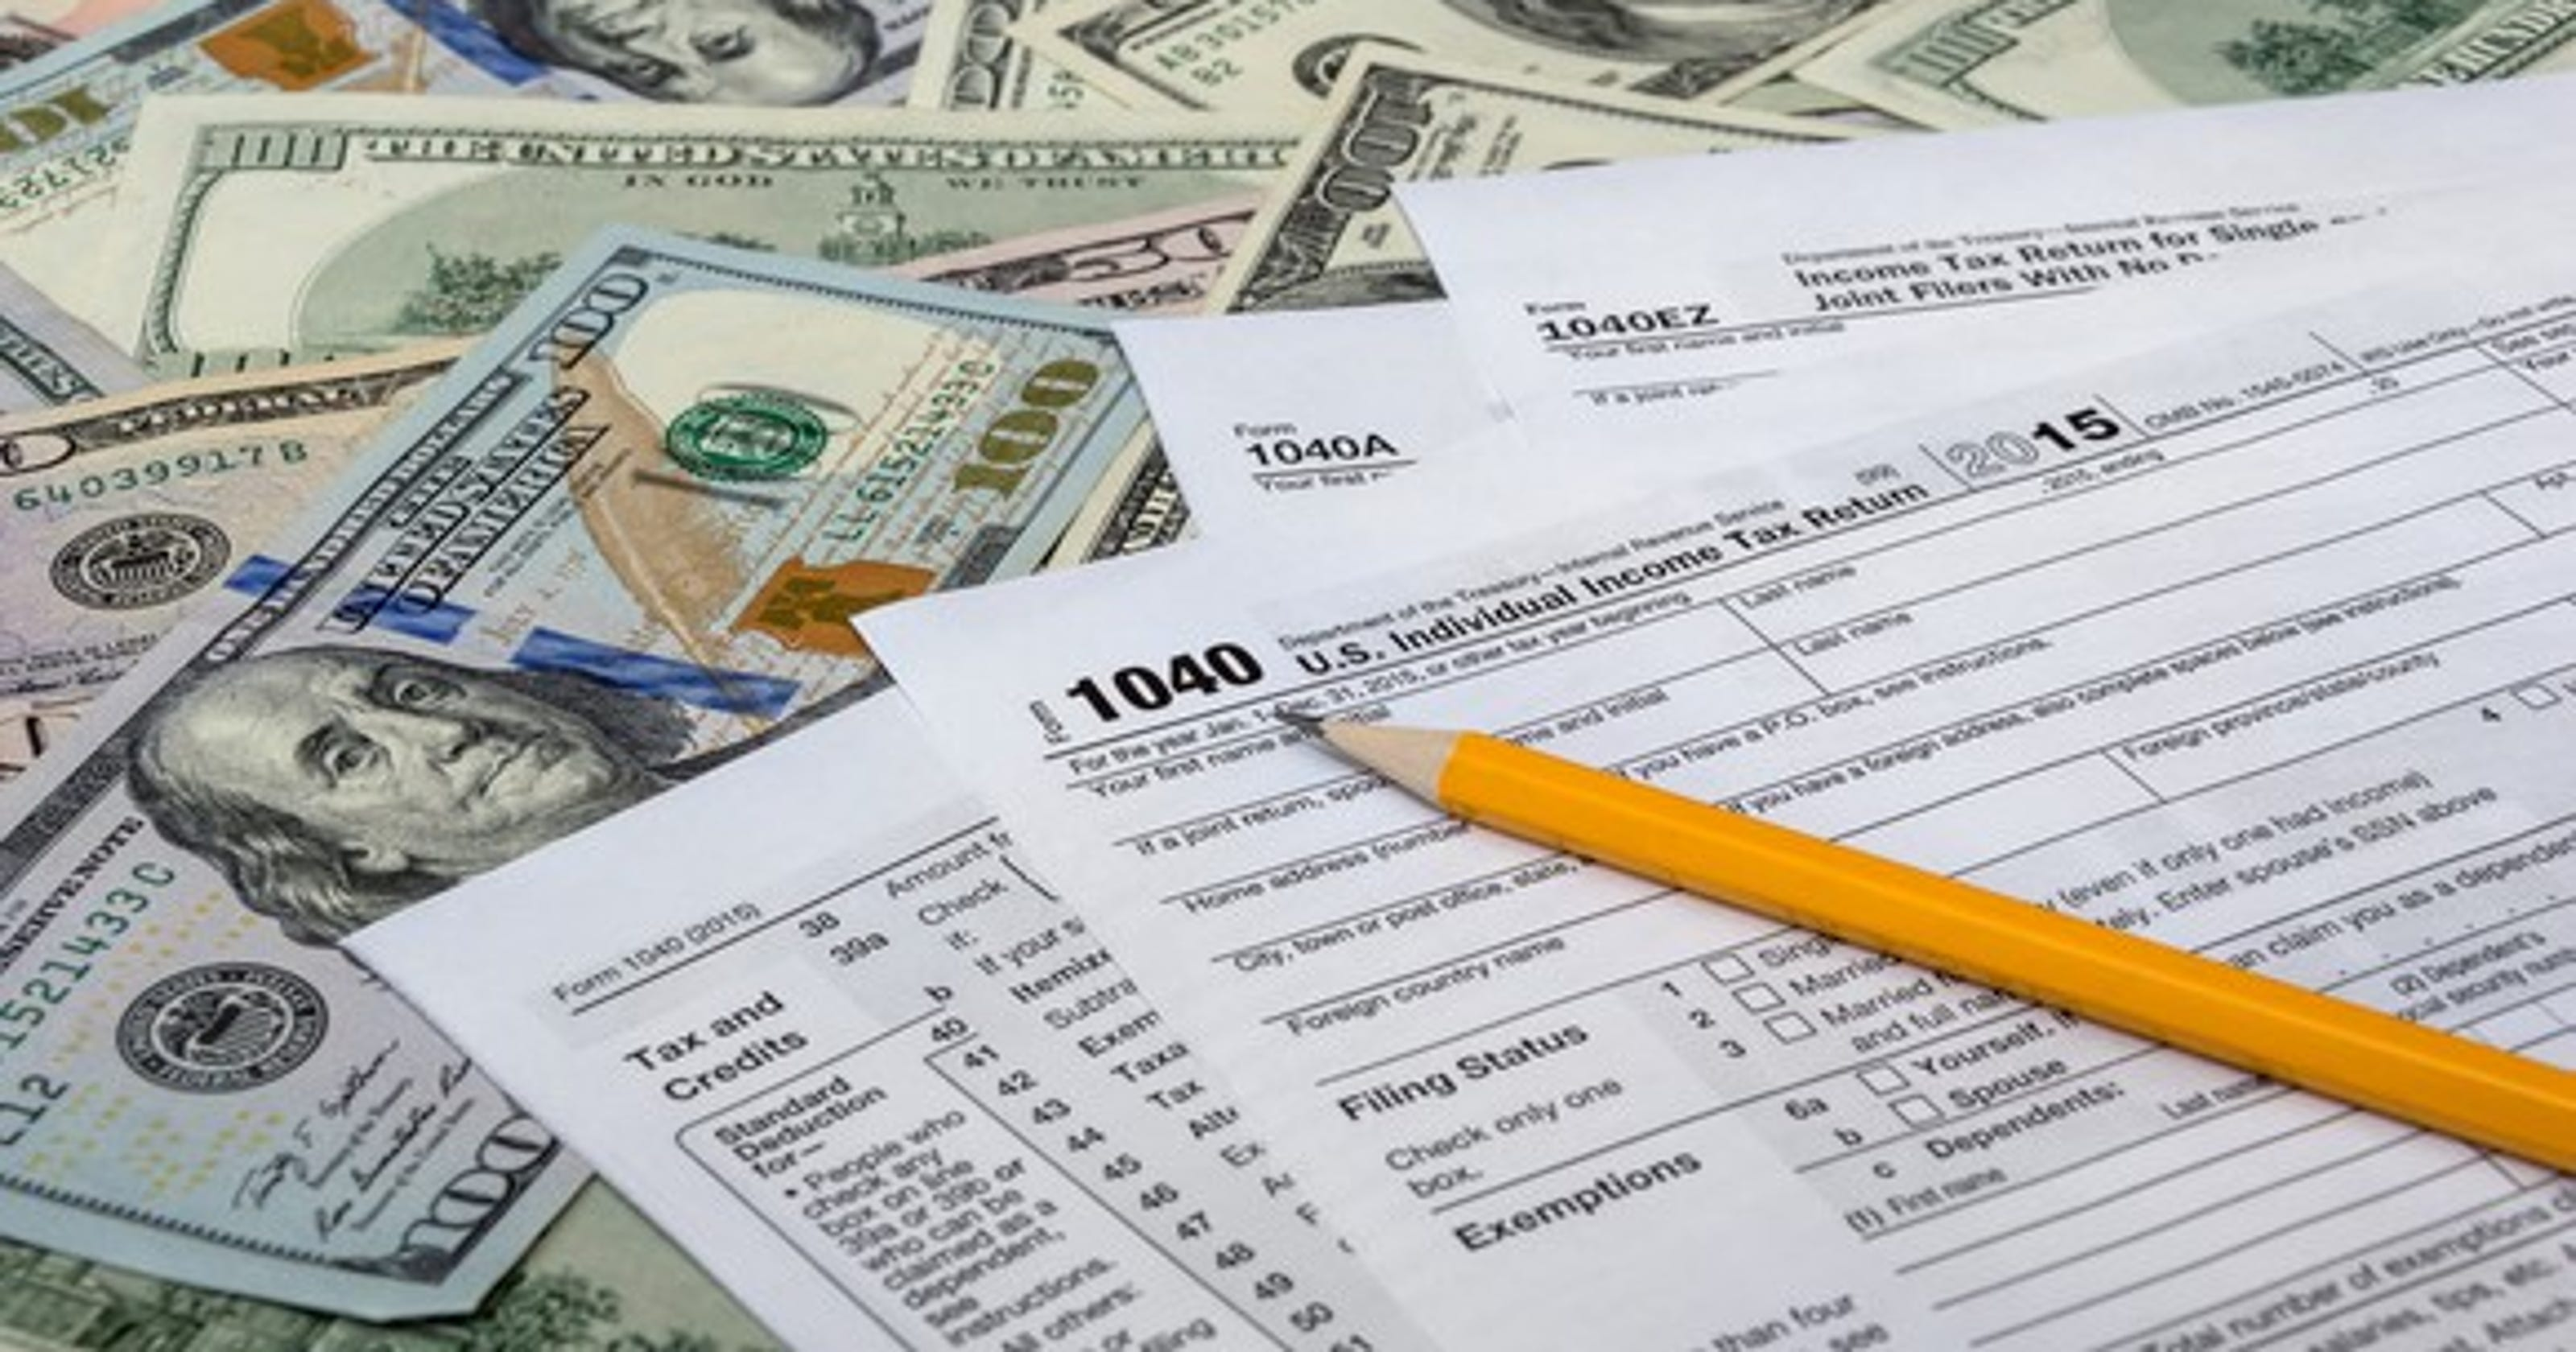 Tax refund schedule for 2018: When can you expect your money?